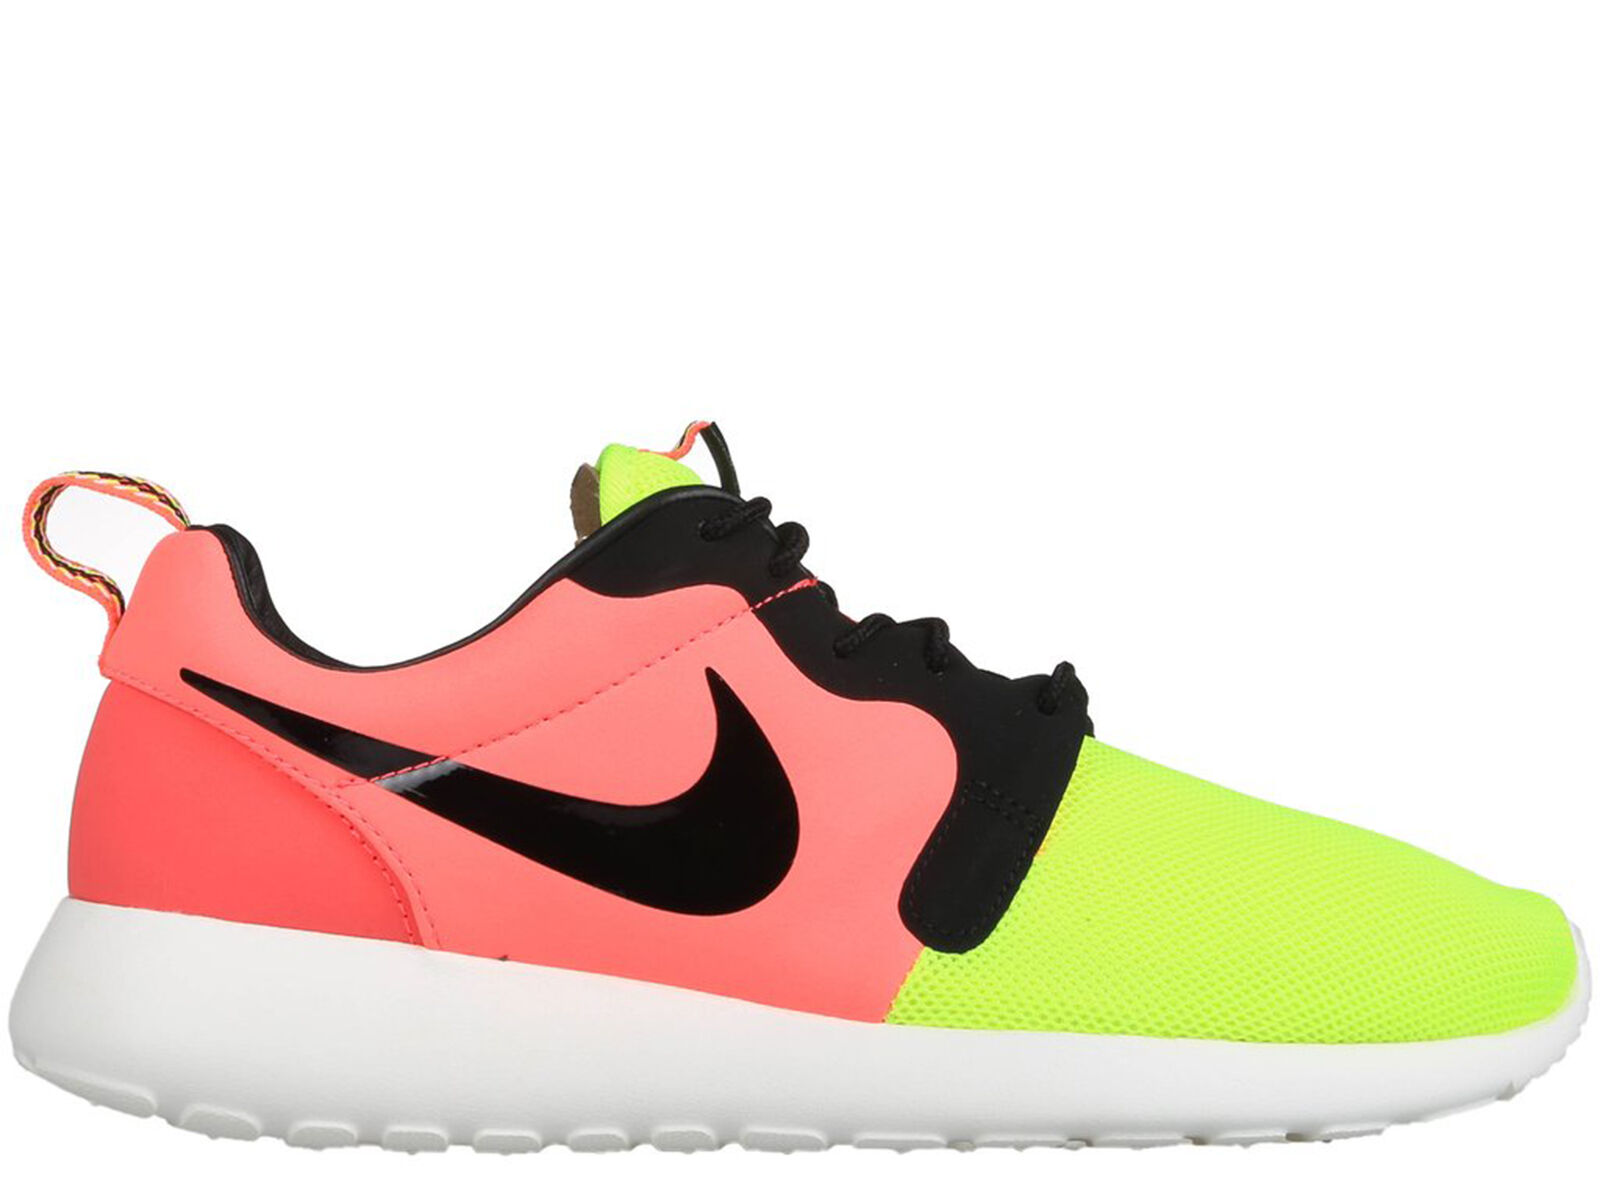 Brand New Nike Rosherun HYP PRM QS Men's Athletic Fashion Sneakers [669689 700]